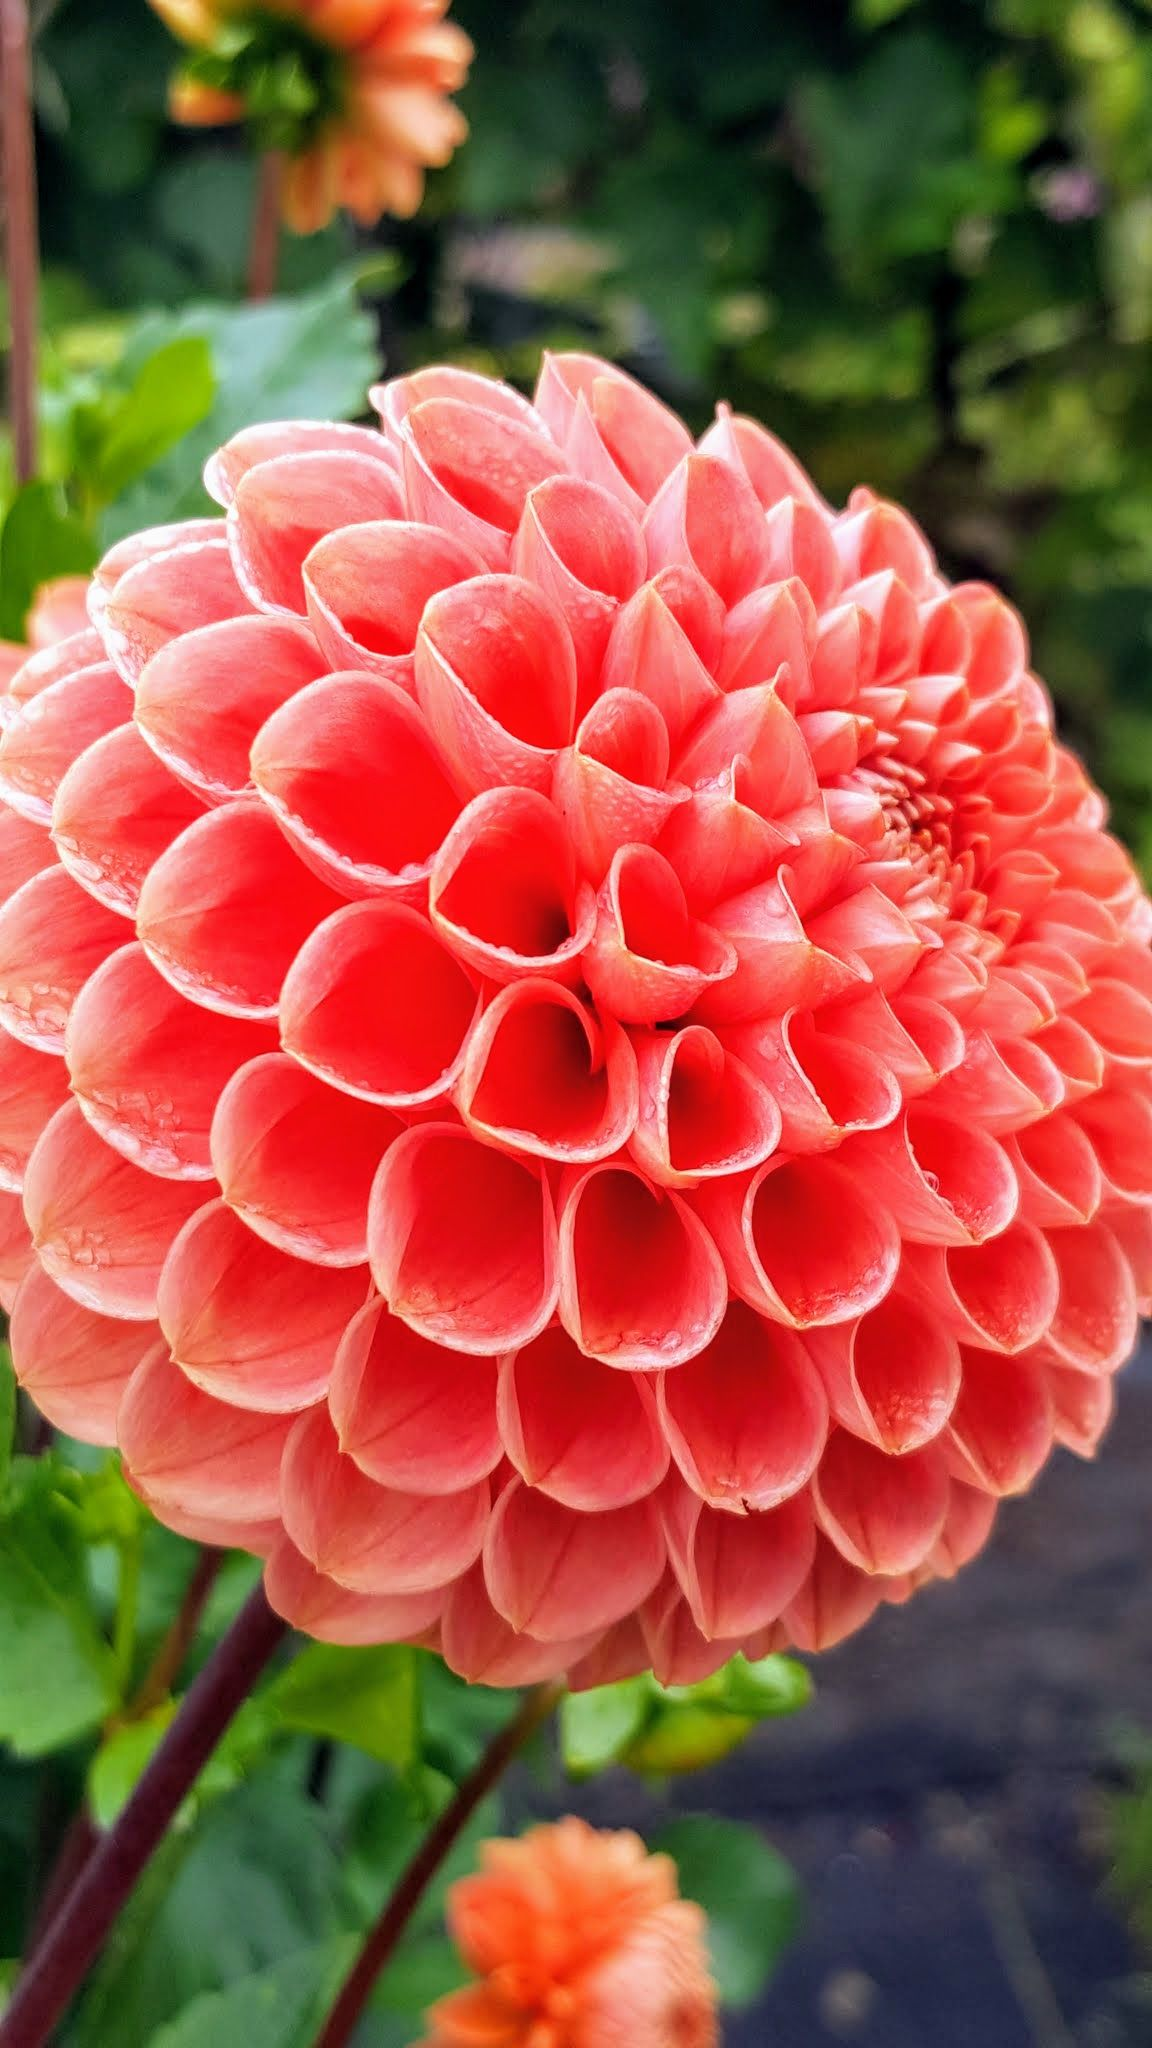 Dahlias are colorful spiky flowers which generally bloom from